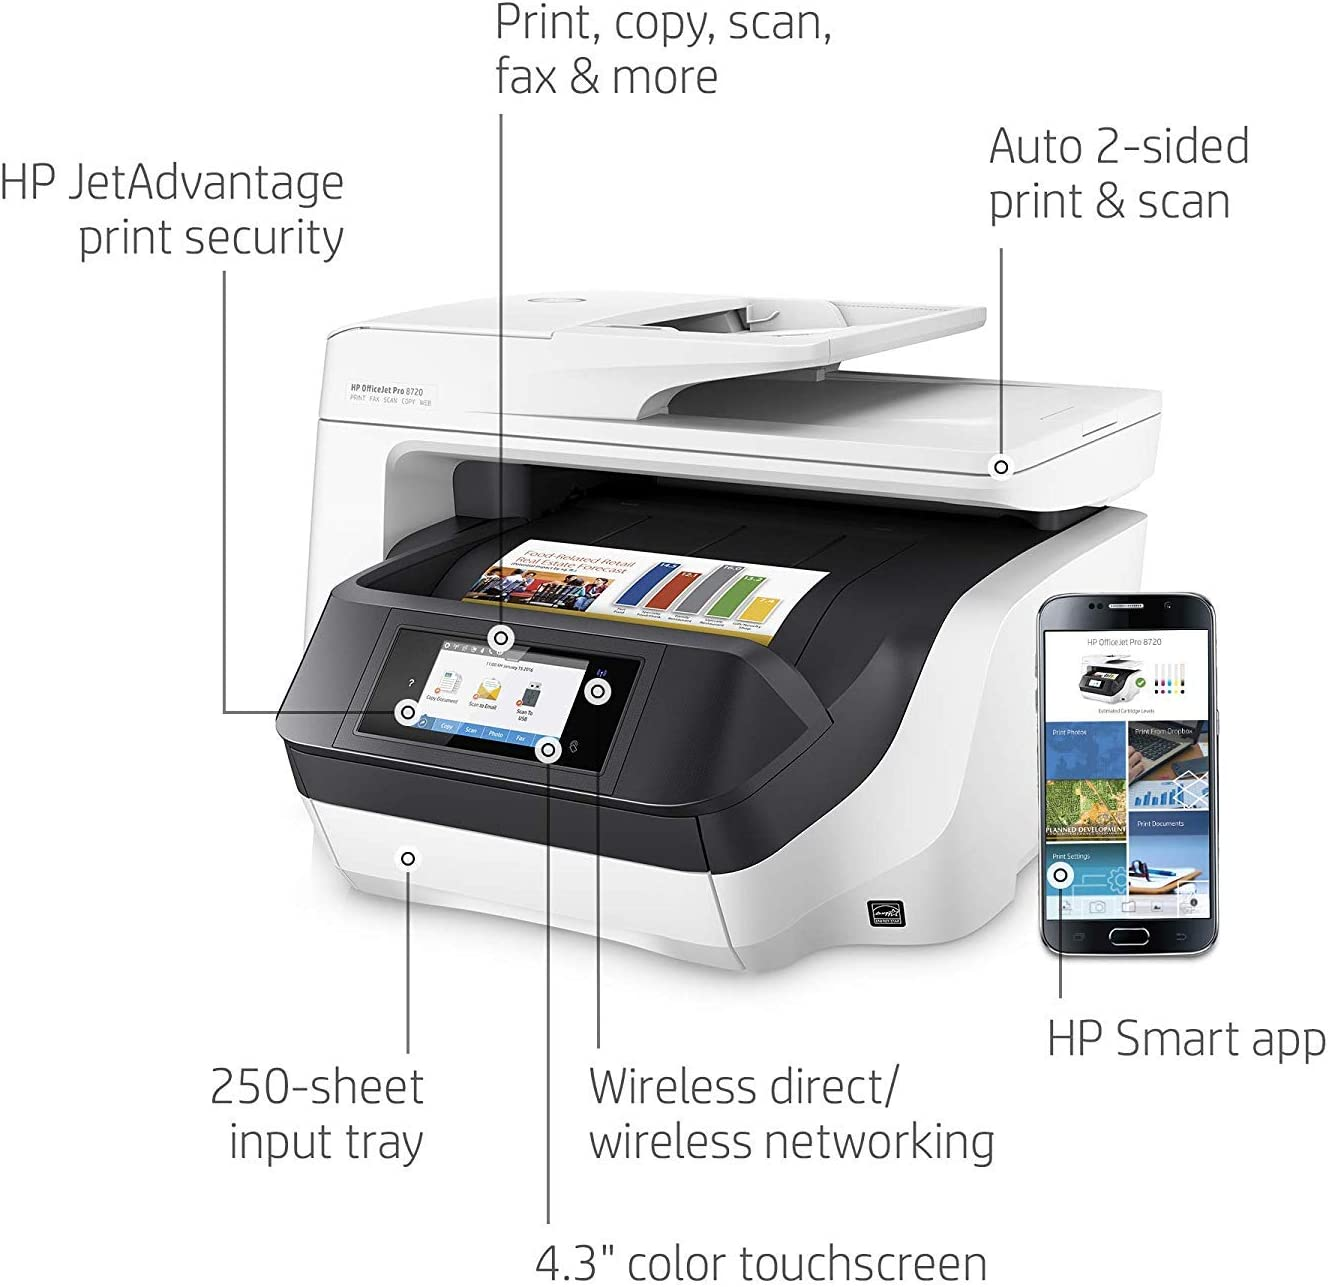 Amazon.com: Impresora de fotos HP Officejet Pro 8720  ...